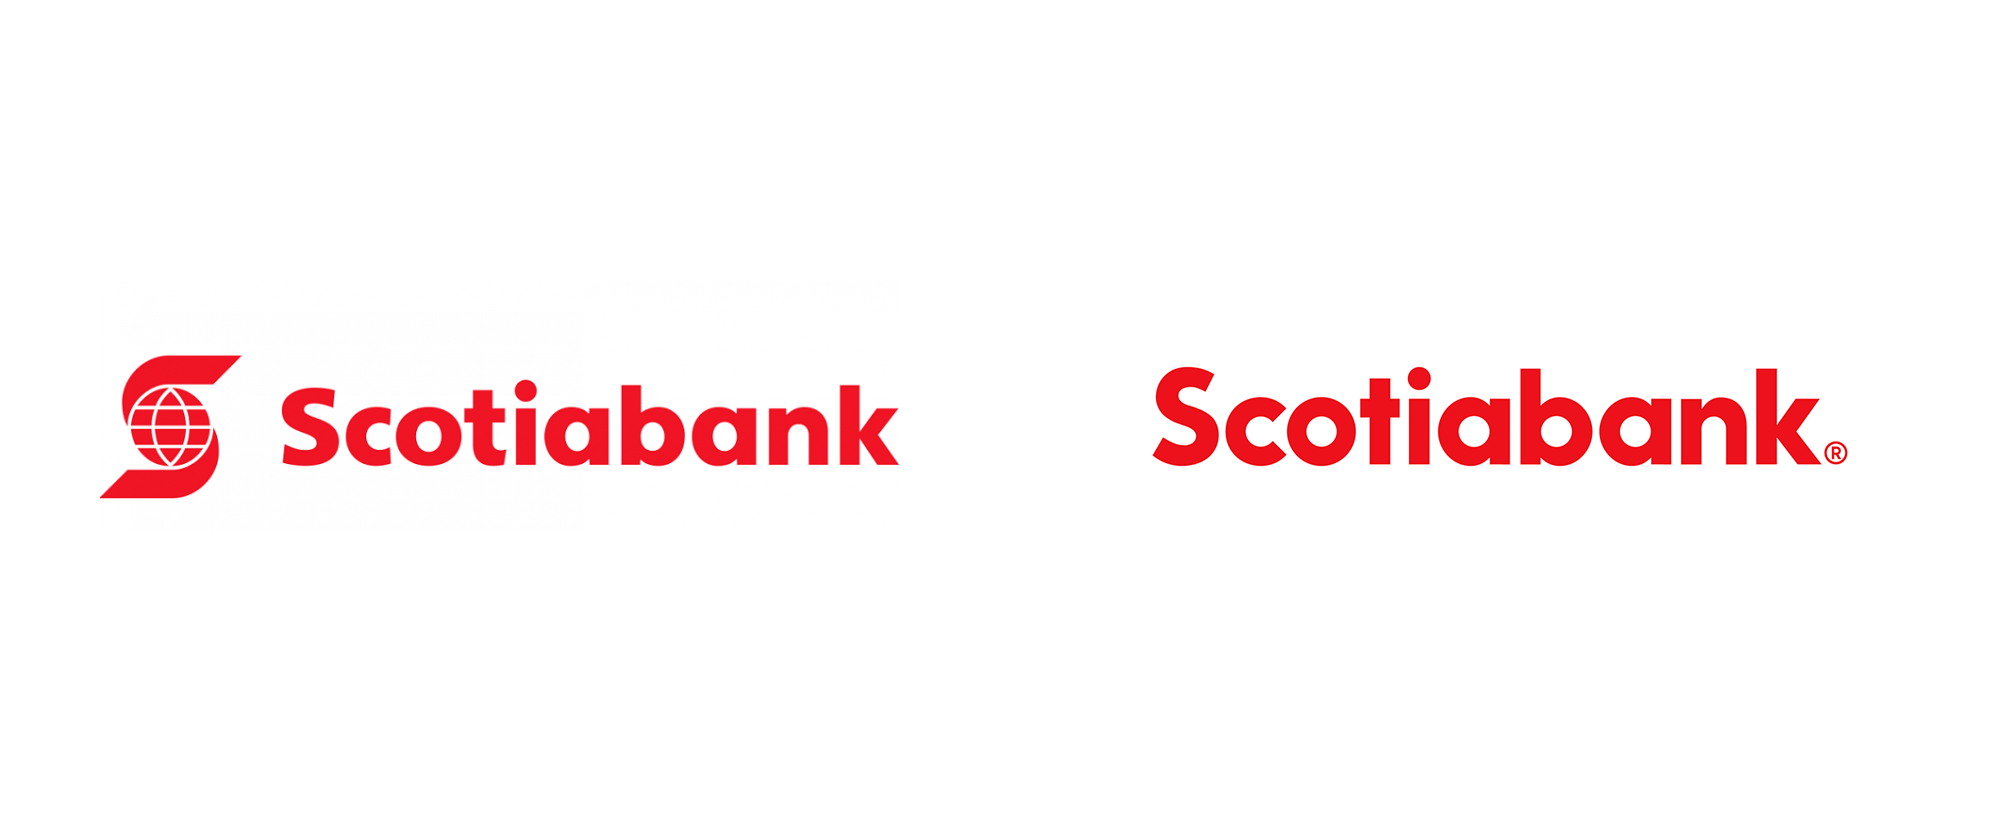 https://0901.nccdn.net/4_2/000/000/017/e75/scotiabank_logo_before_after-2000x832.png